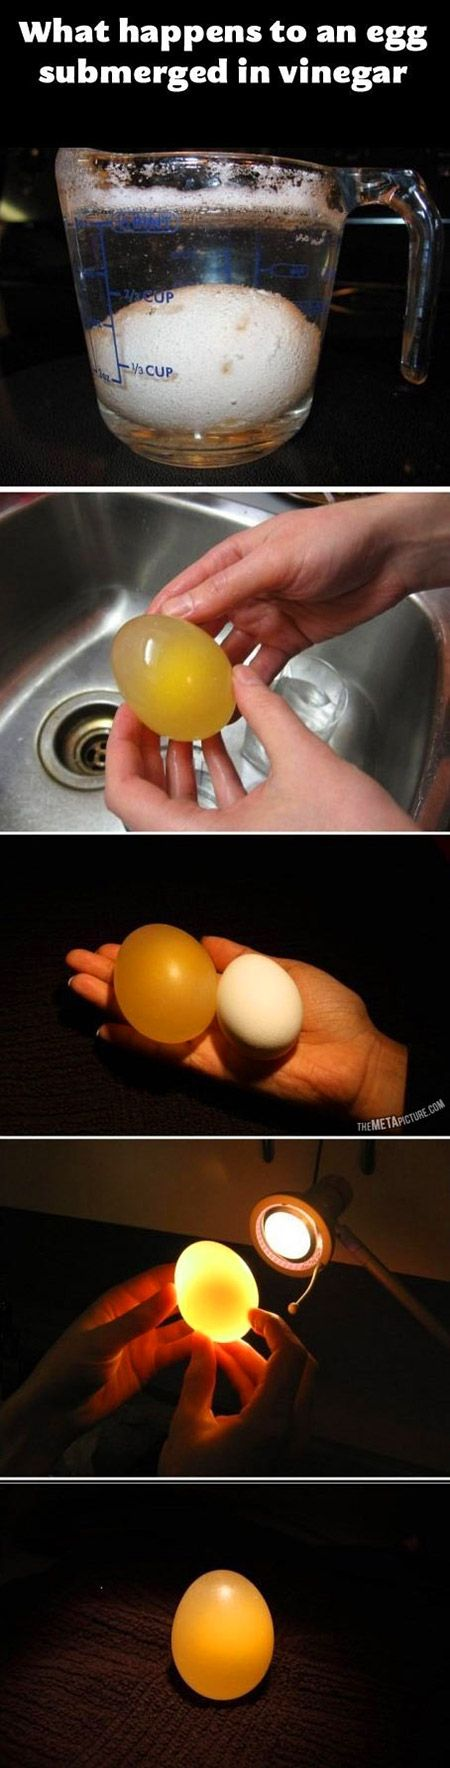 This is what happens when you put an egg in vinegar for a while.